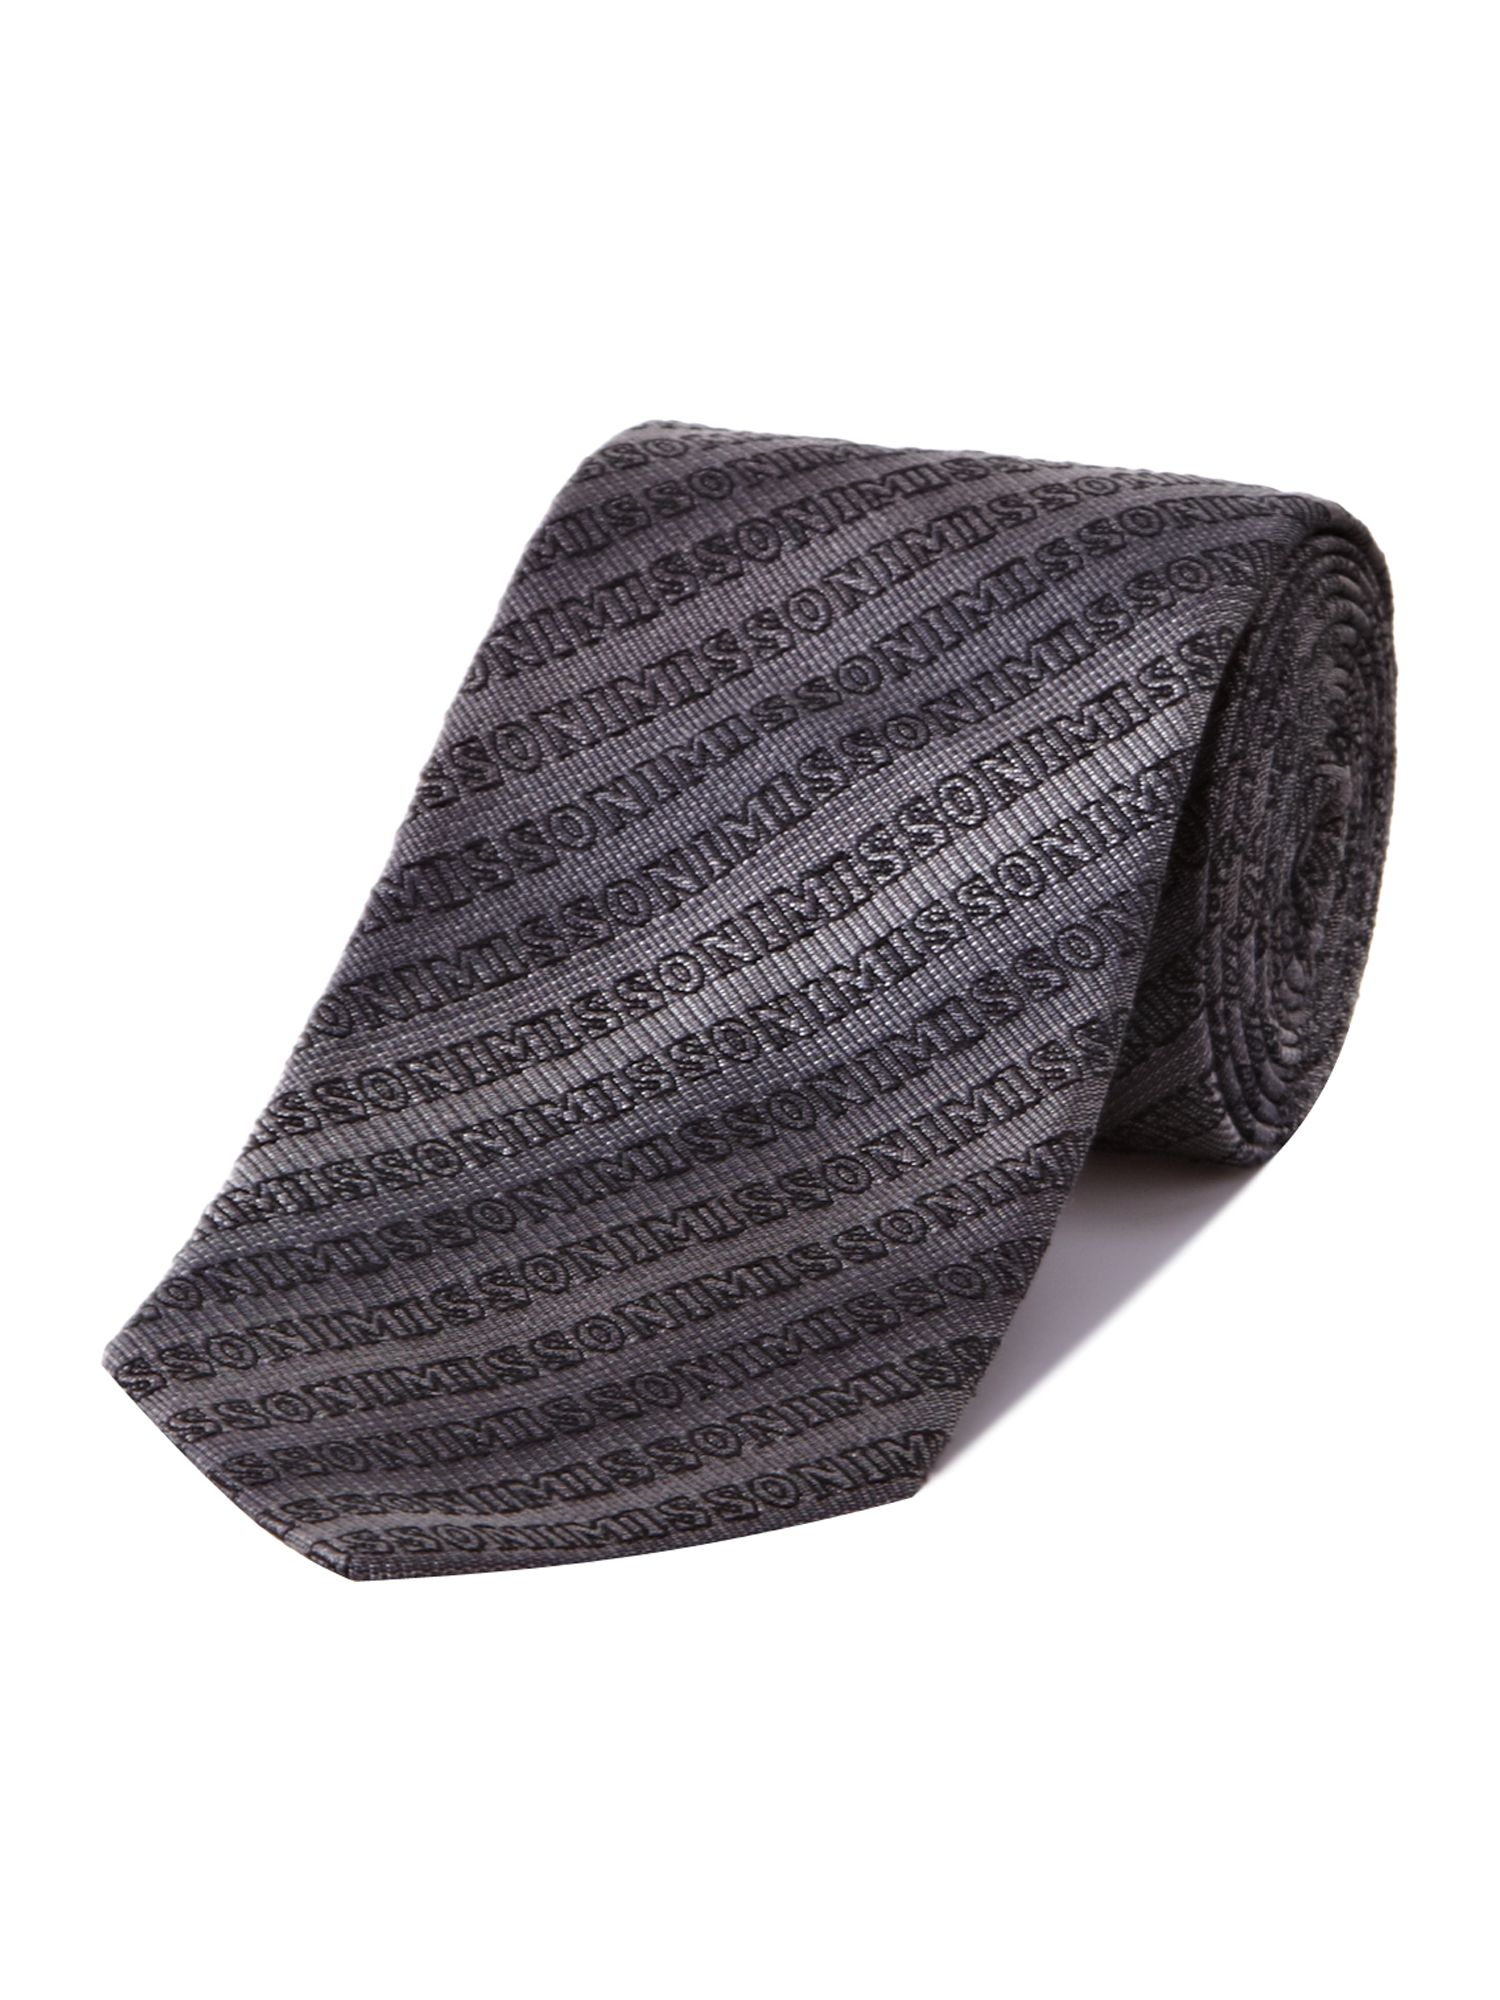 All over missoni logo tie